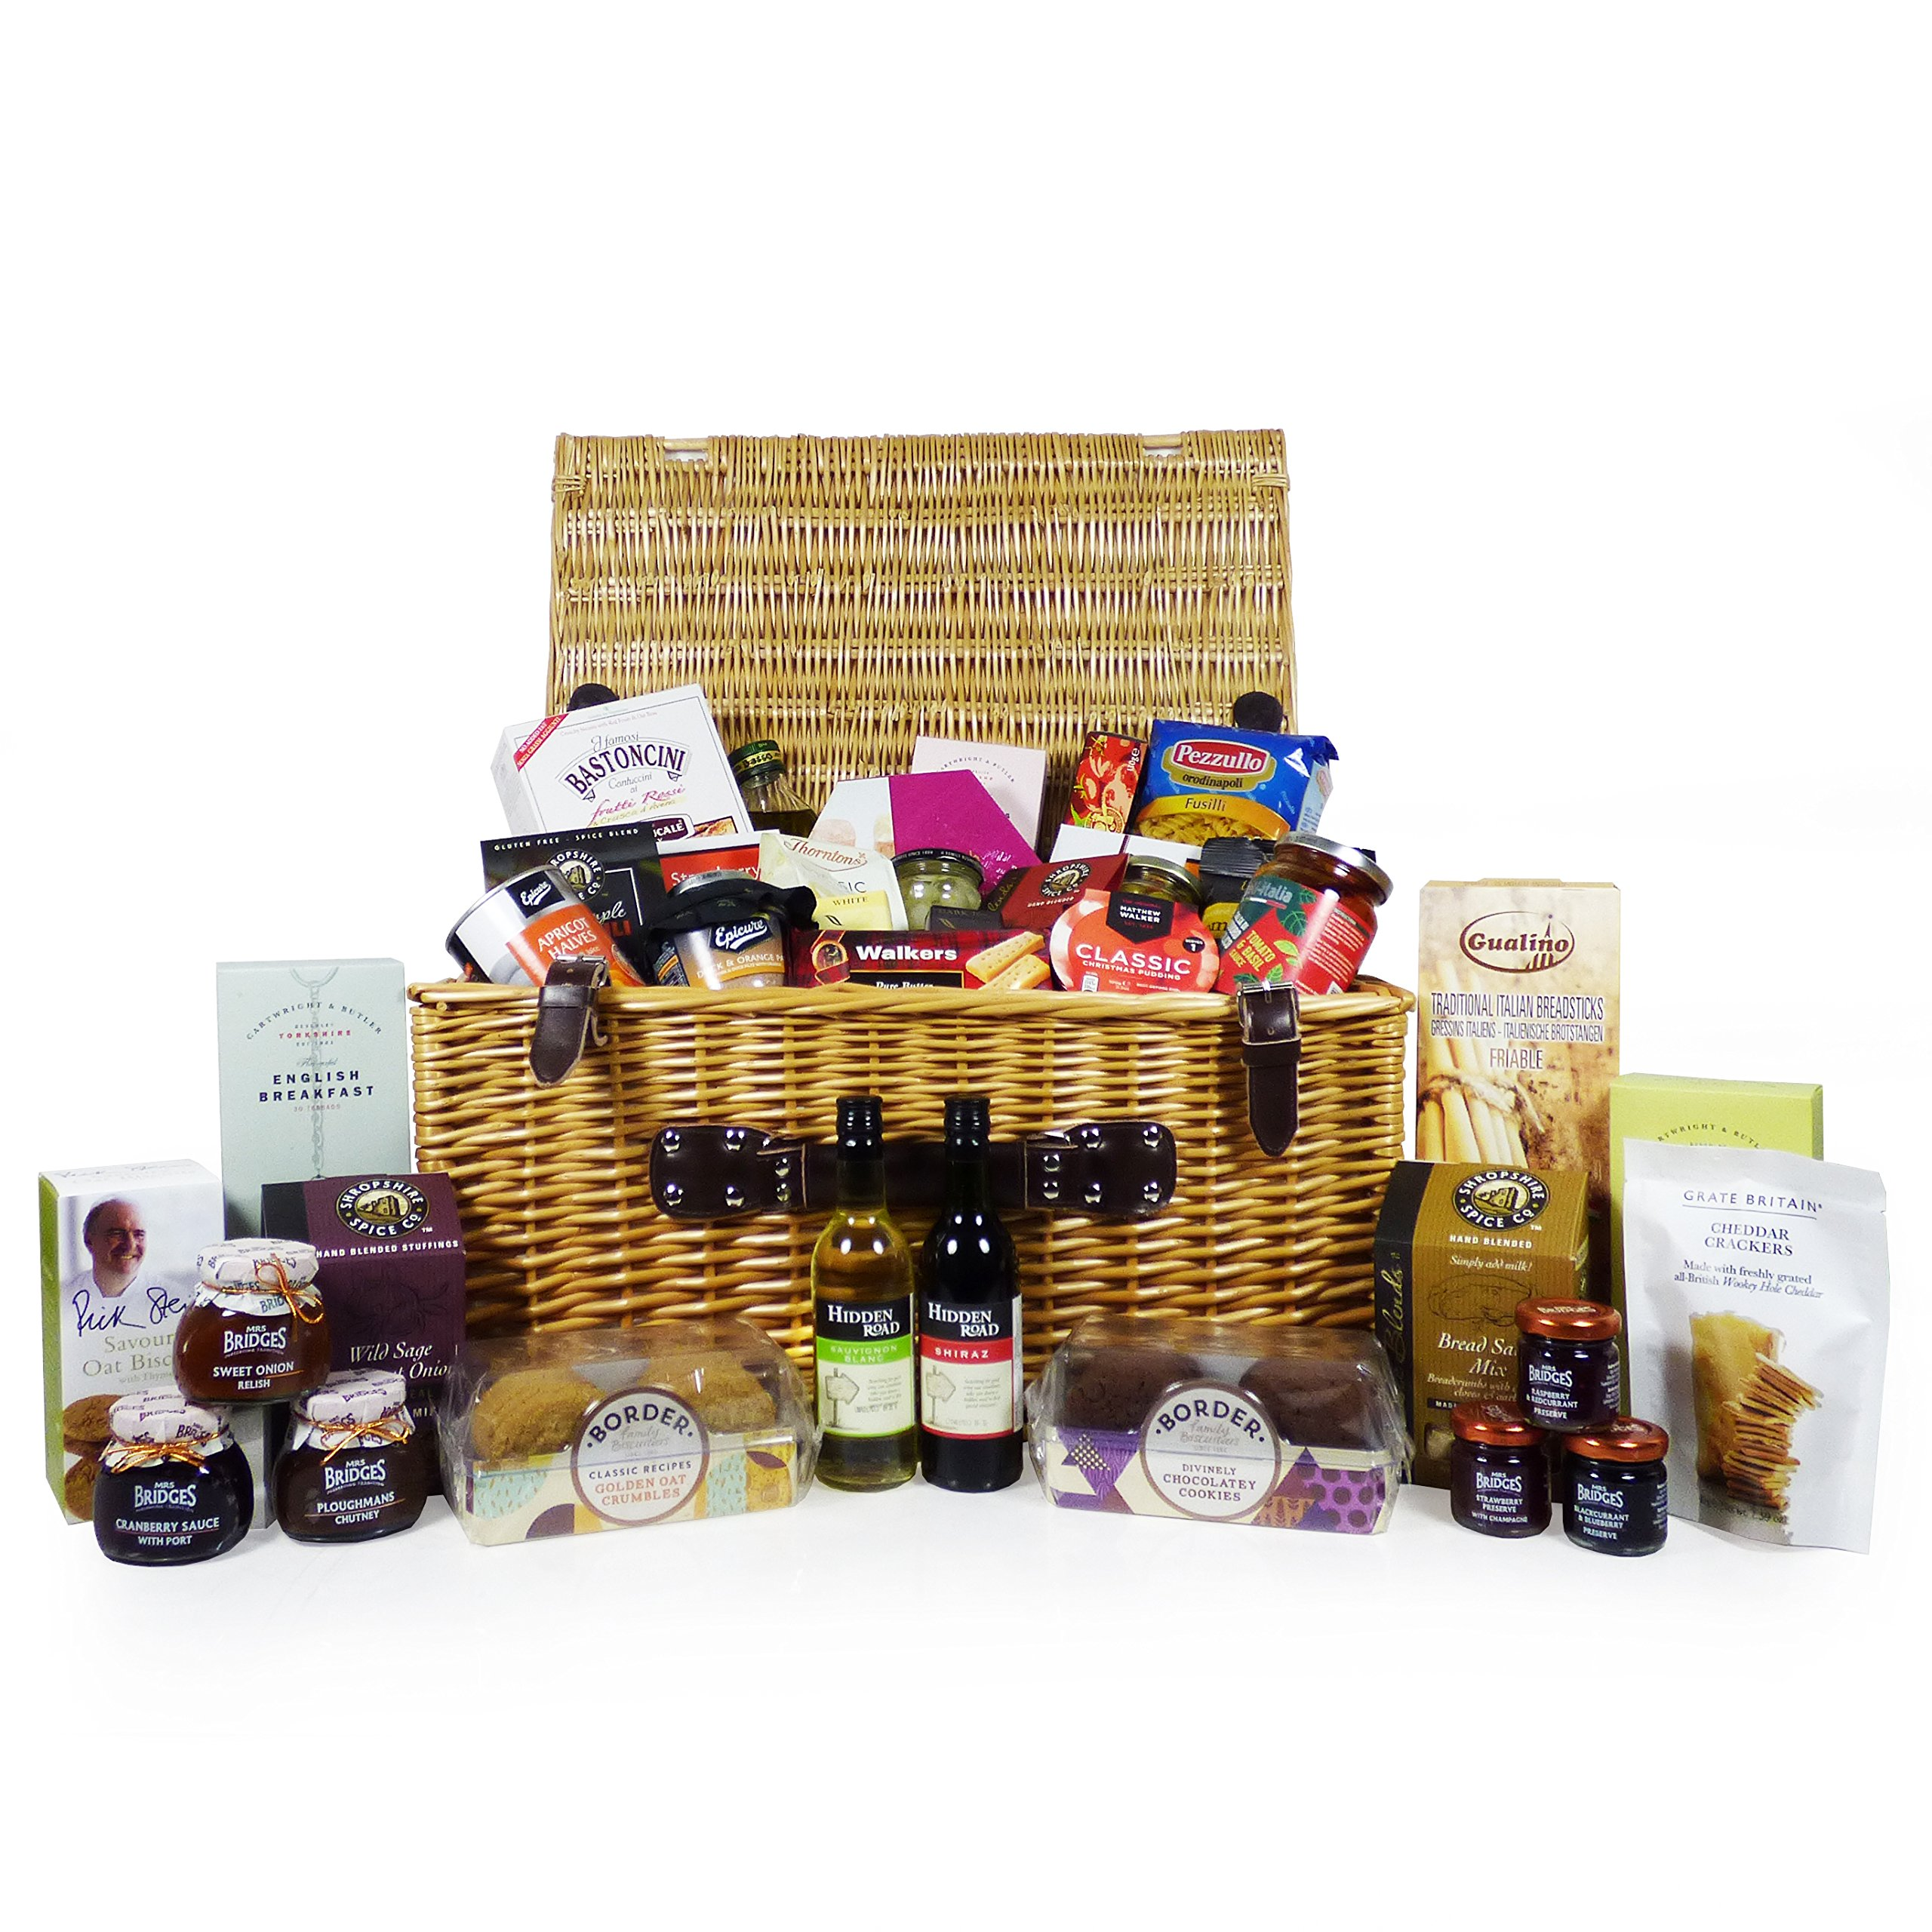 Christmas Hamper Basket.For Someone Special Large Luxury Wicker Food And Drink Hamper Basket With 40 Gourmet Food Items Including 2 X 187ml Bottles Of Wine A Great Gift